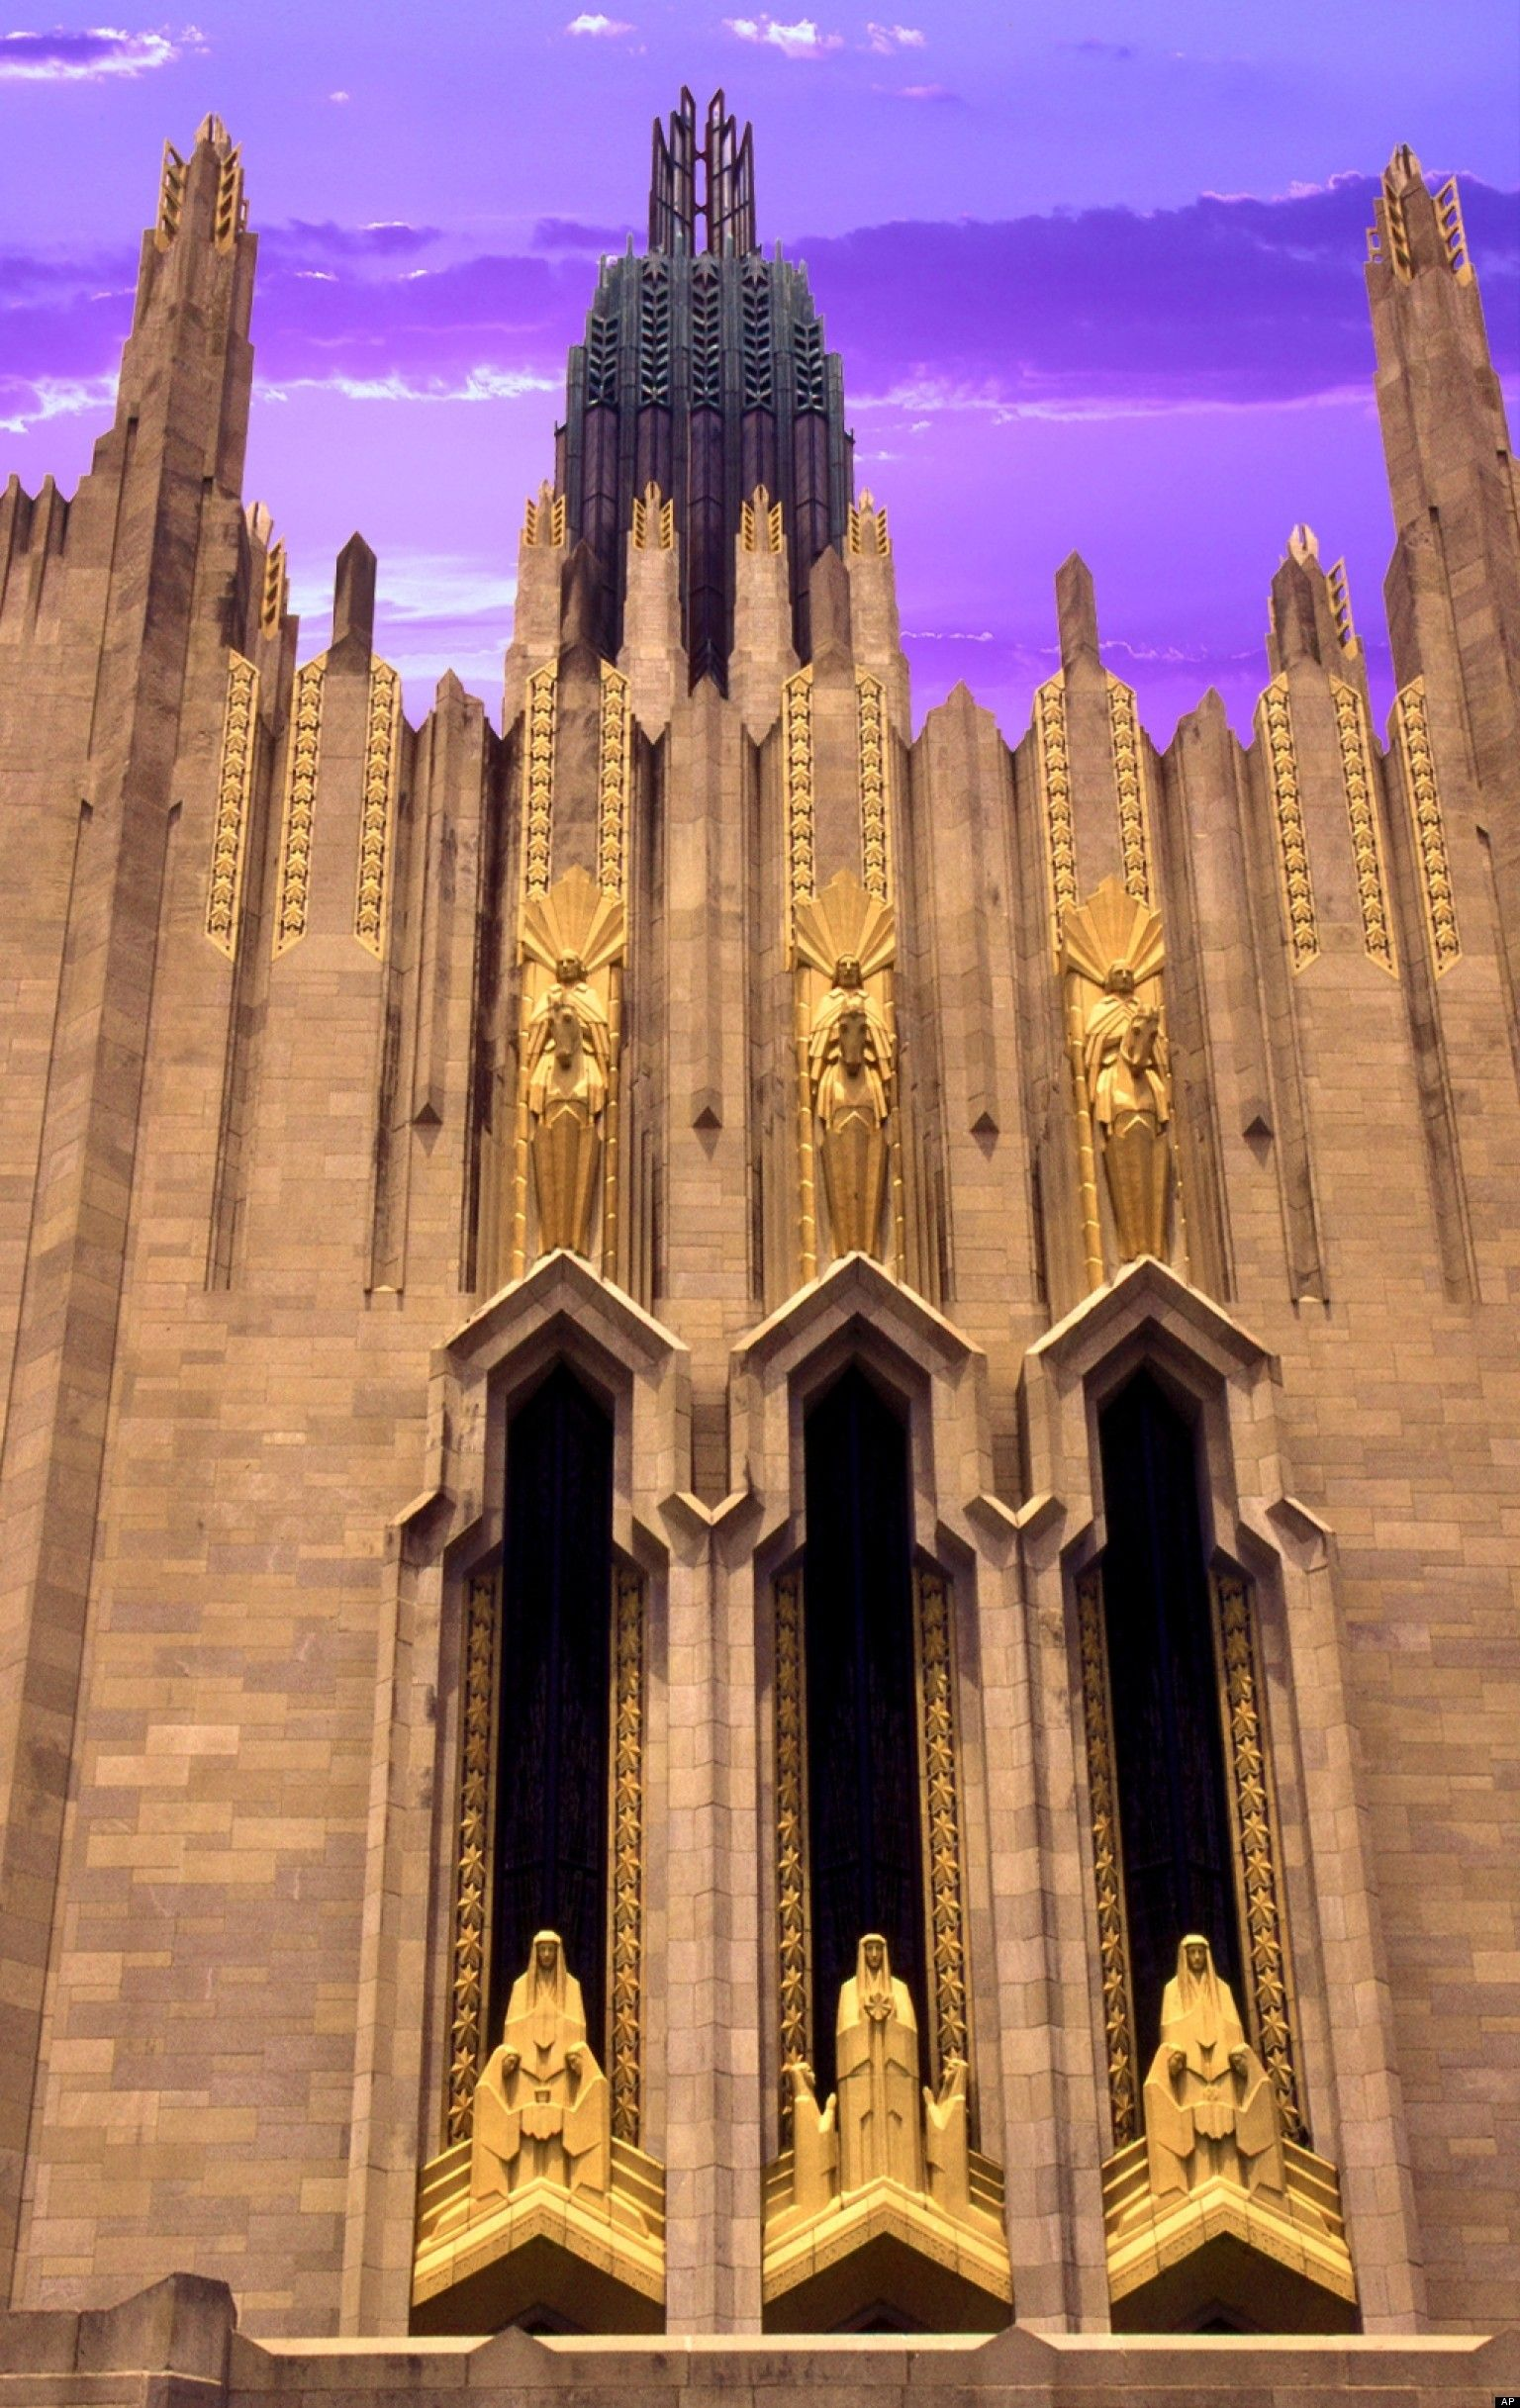 1000 images about art deco on pinterest art deco tulsa oklahoma and mumbai art deco office tower piet